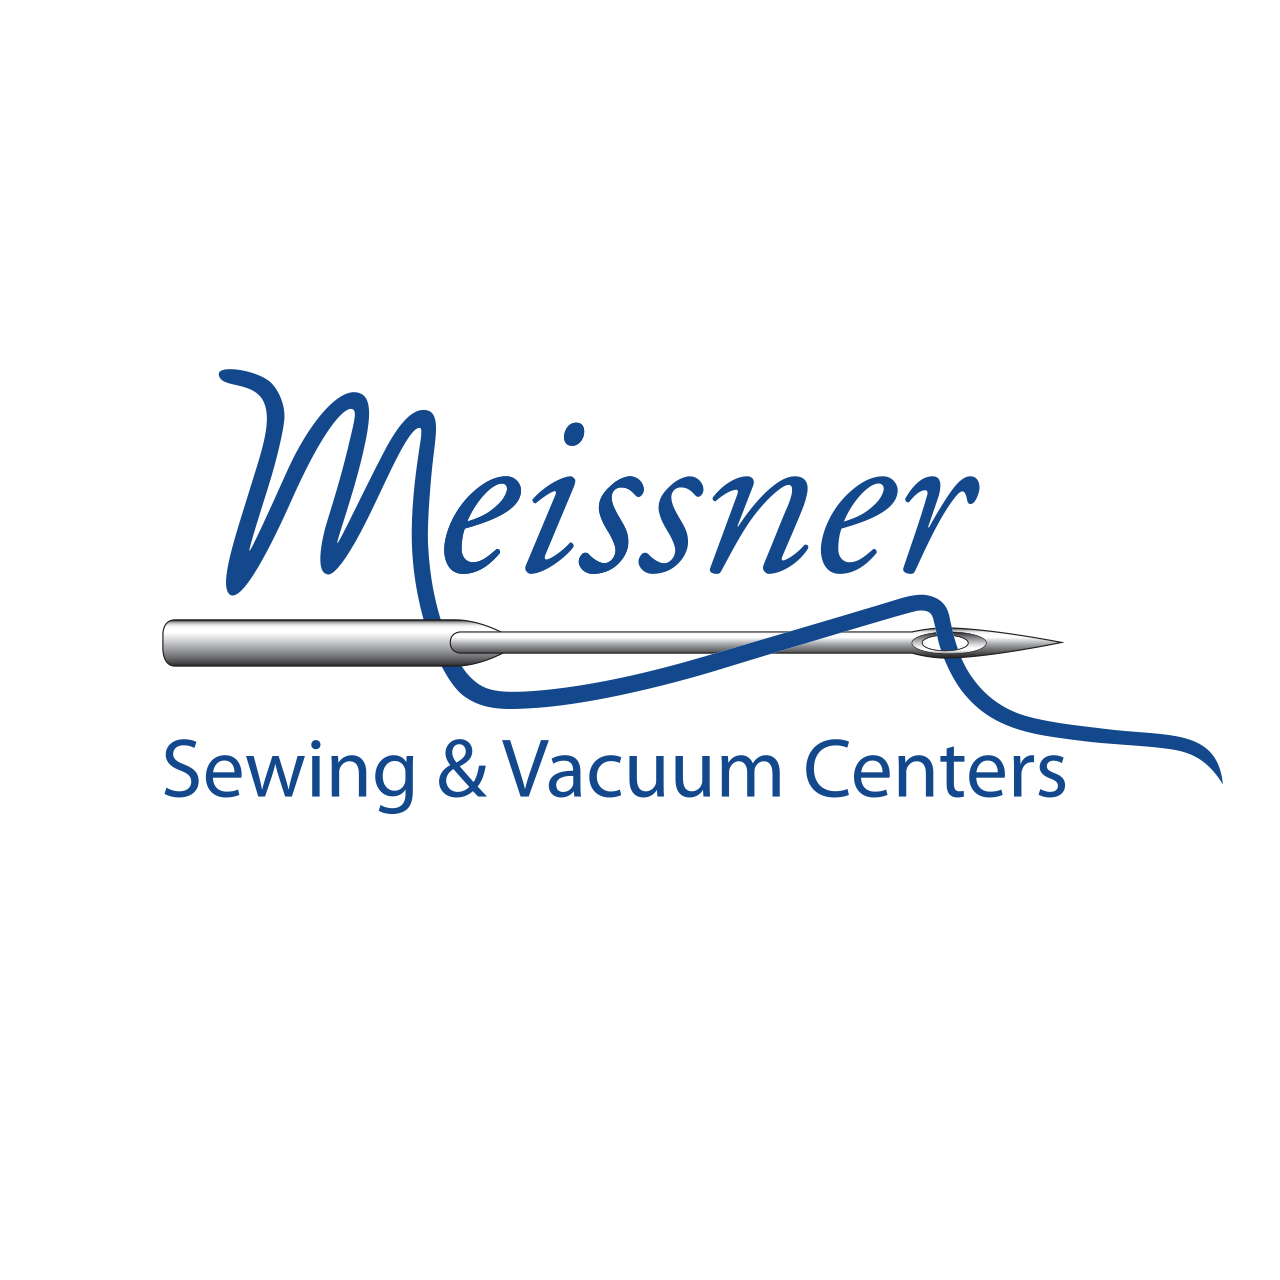 Digitizing on Your Solaris/Luminaire | Meissner Sewing